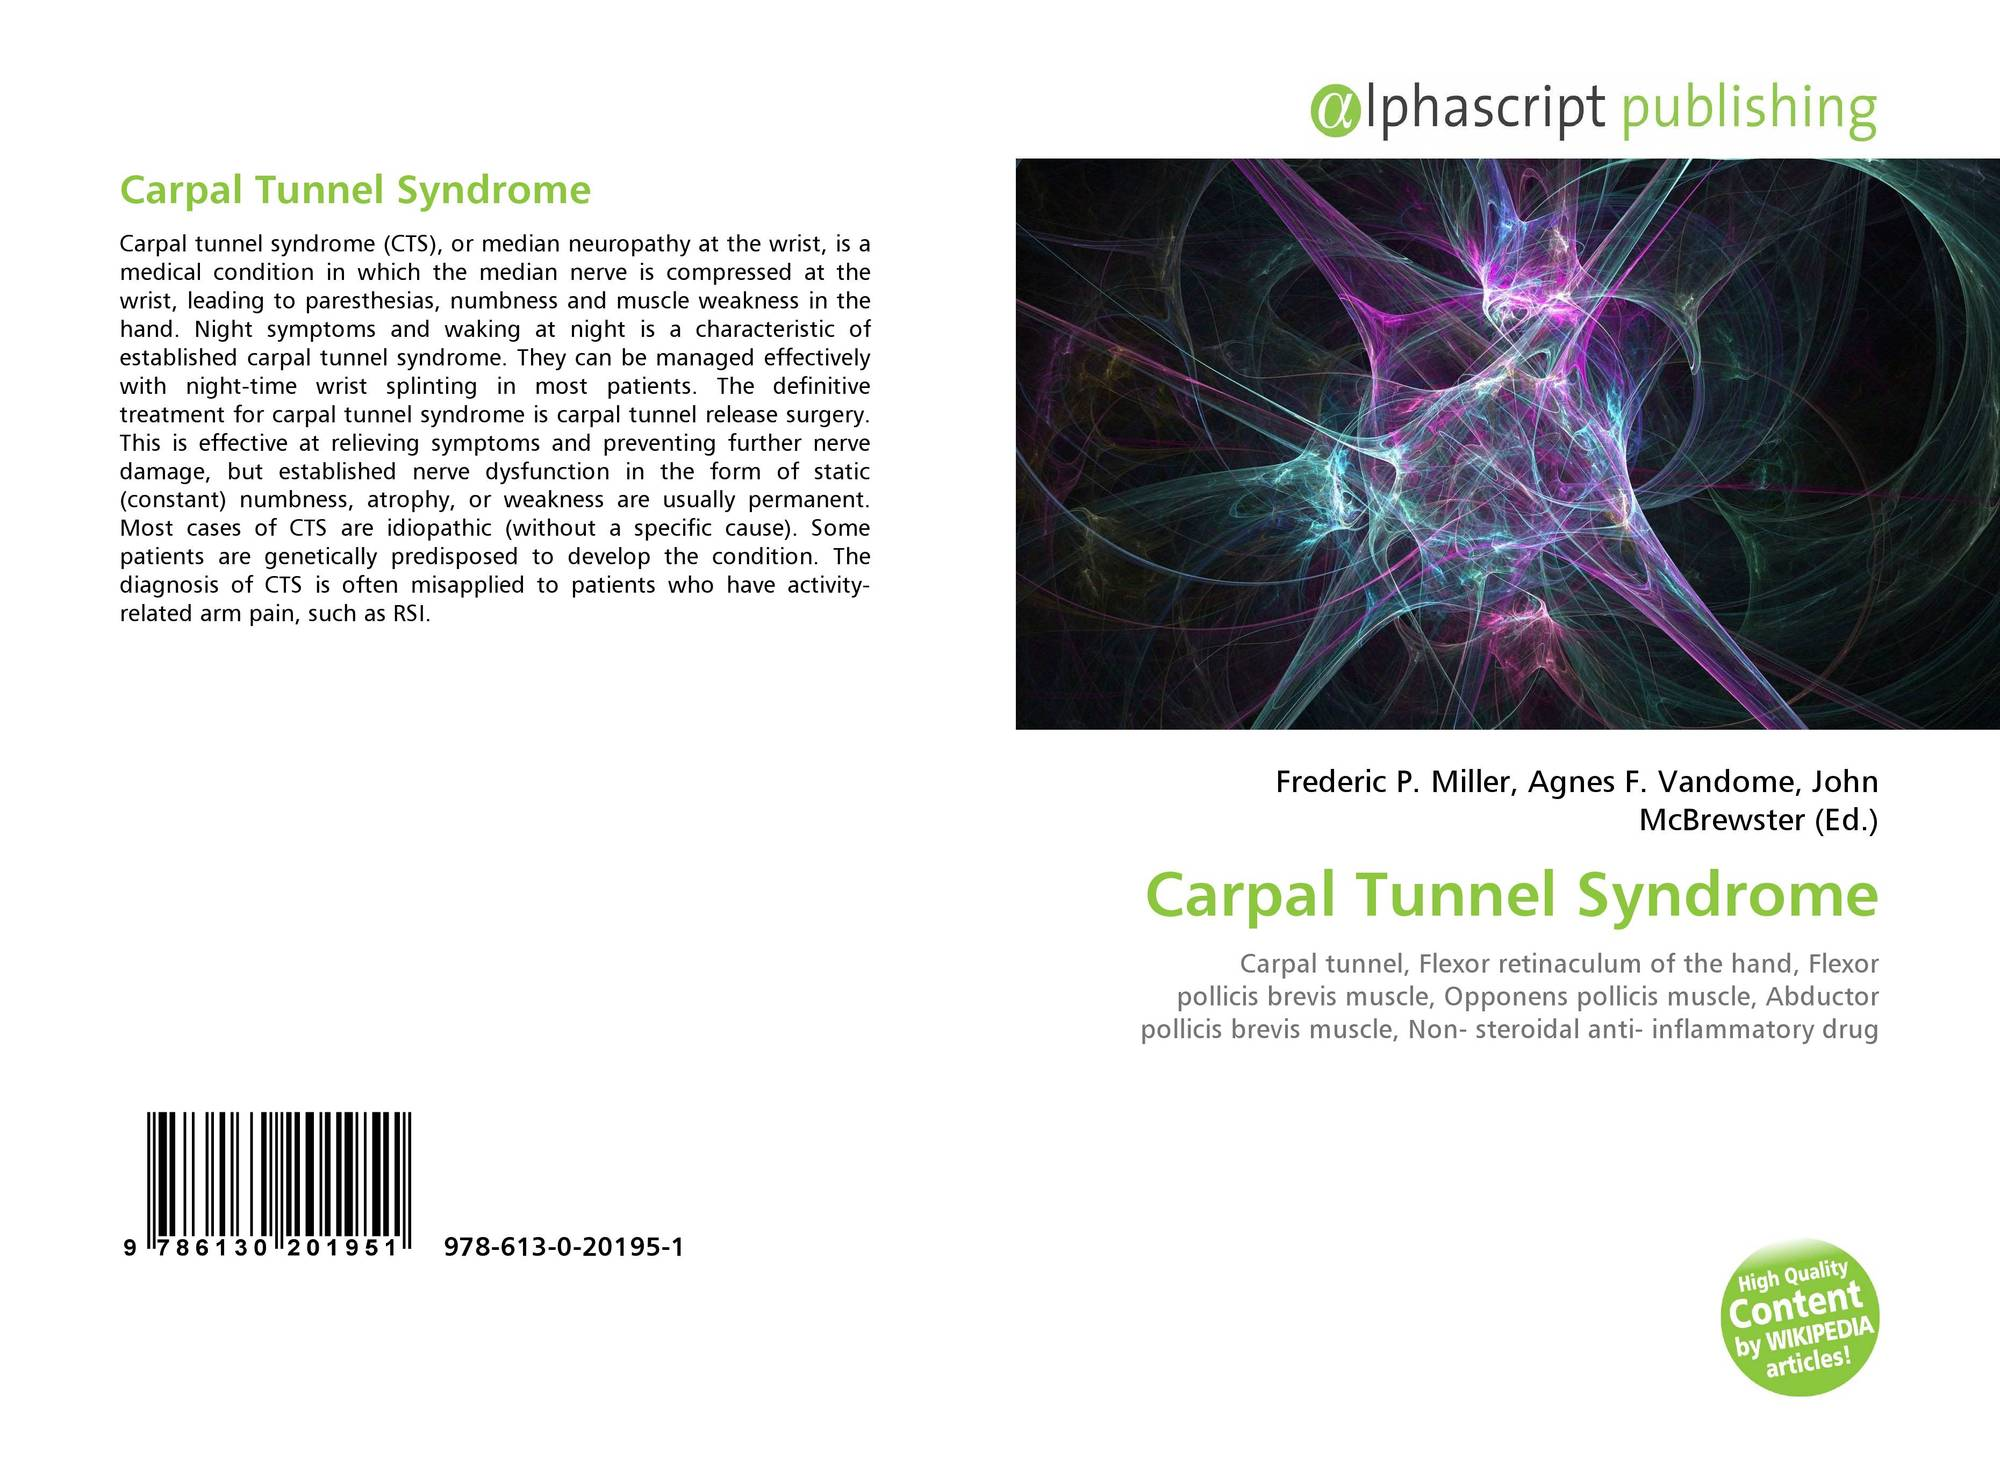 Carpal Tunnel Syndrome 978 613 0 20195 1 6130201958 9786130201951